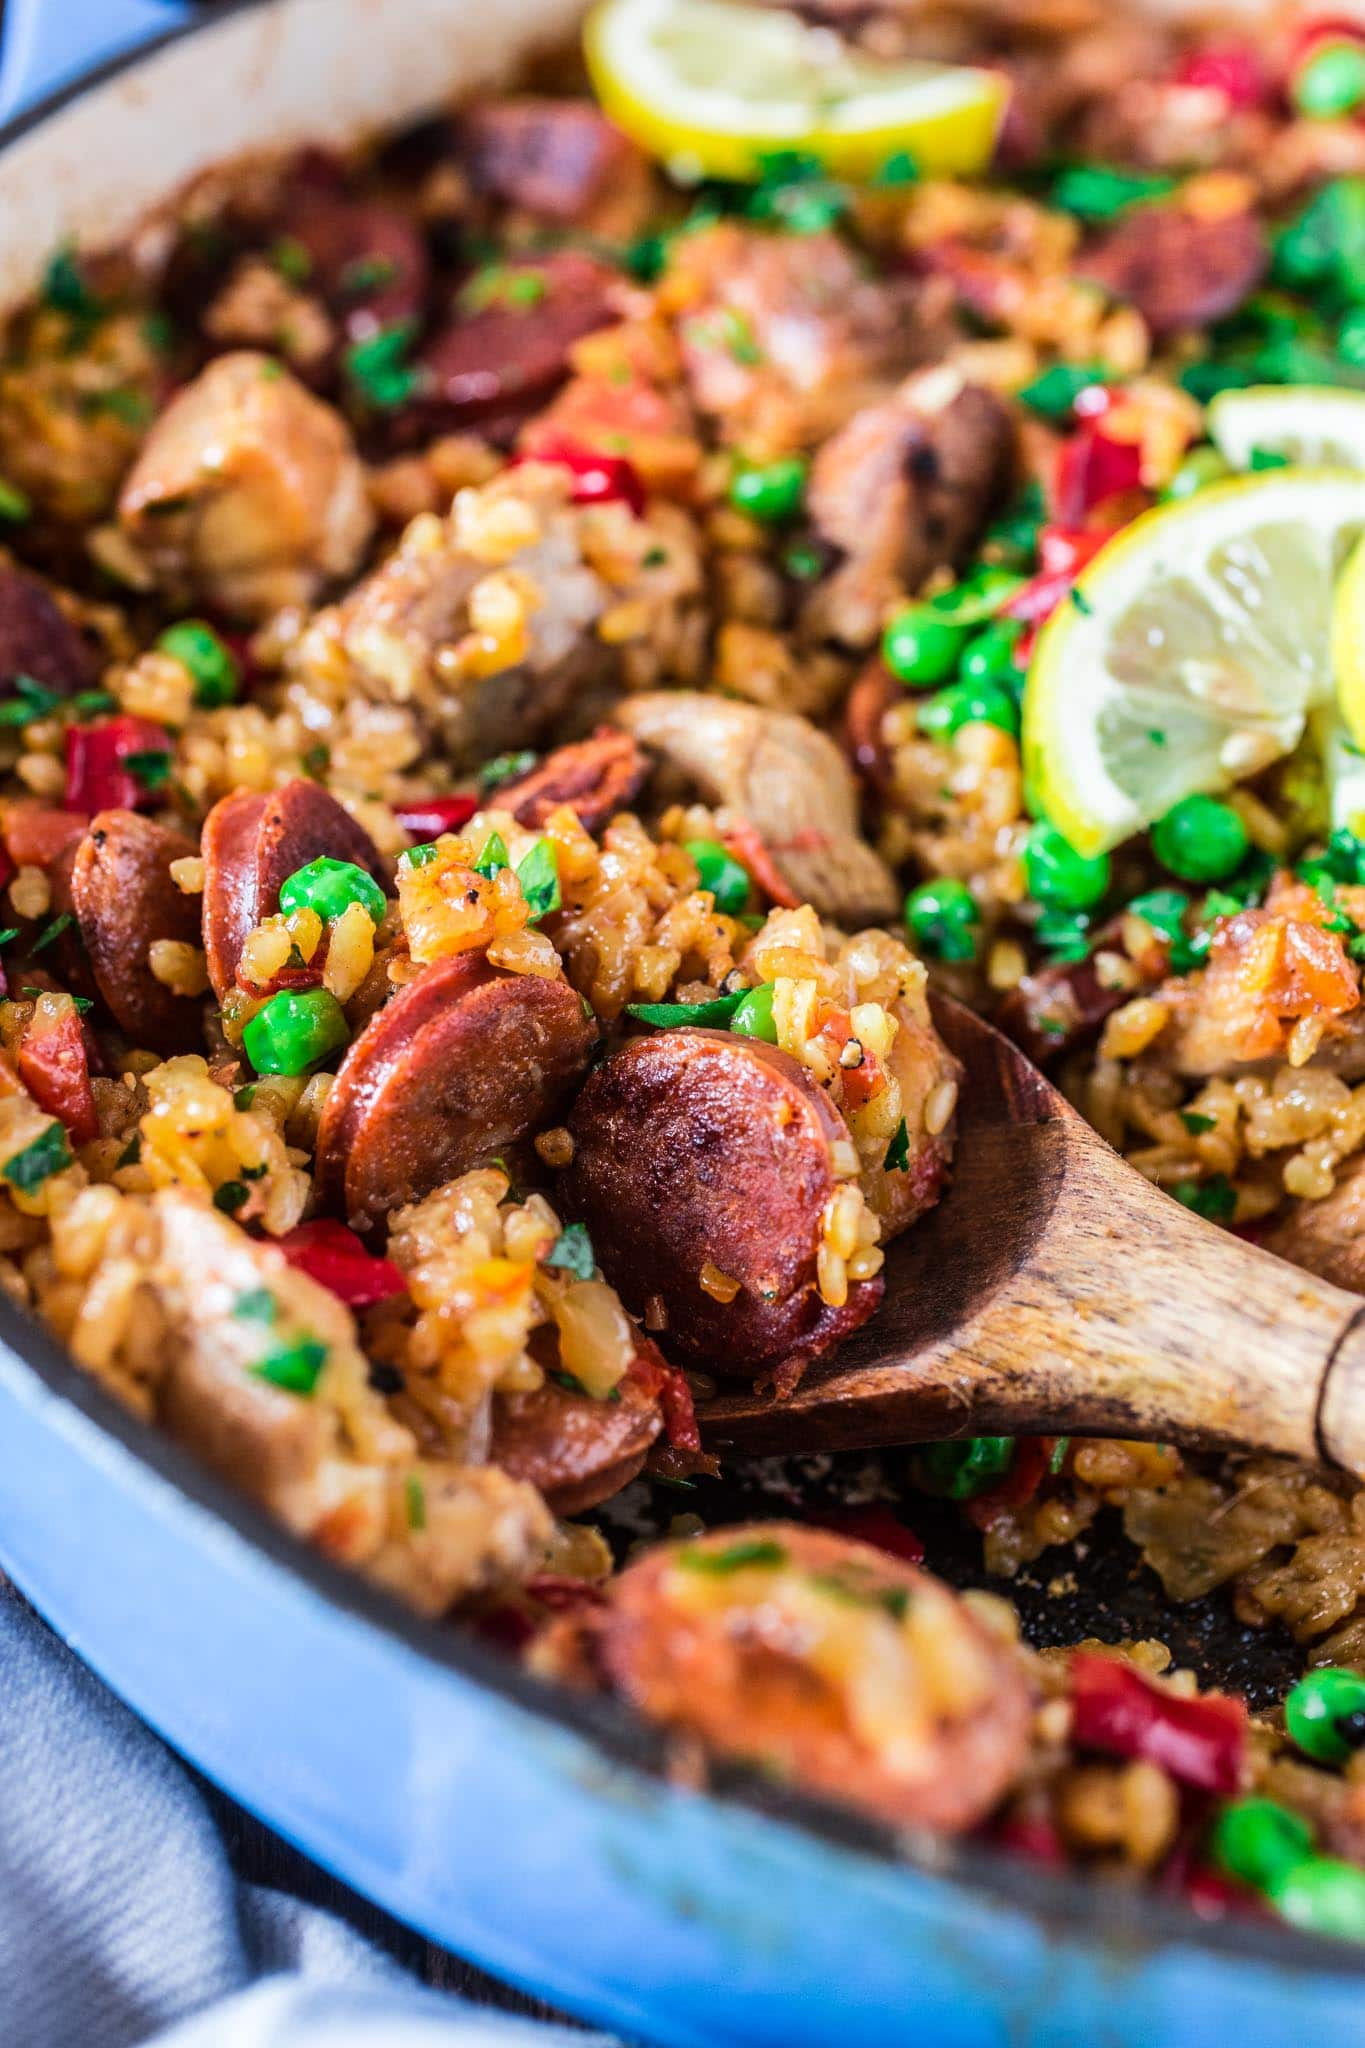 Chicken and chorizo paella olivias cuisine chicken and chorizo paella oliviascuisine a chicken and chorizo paella forumfinder Image collections